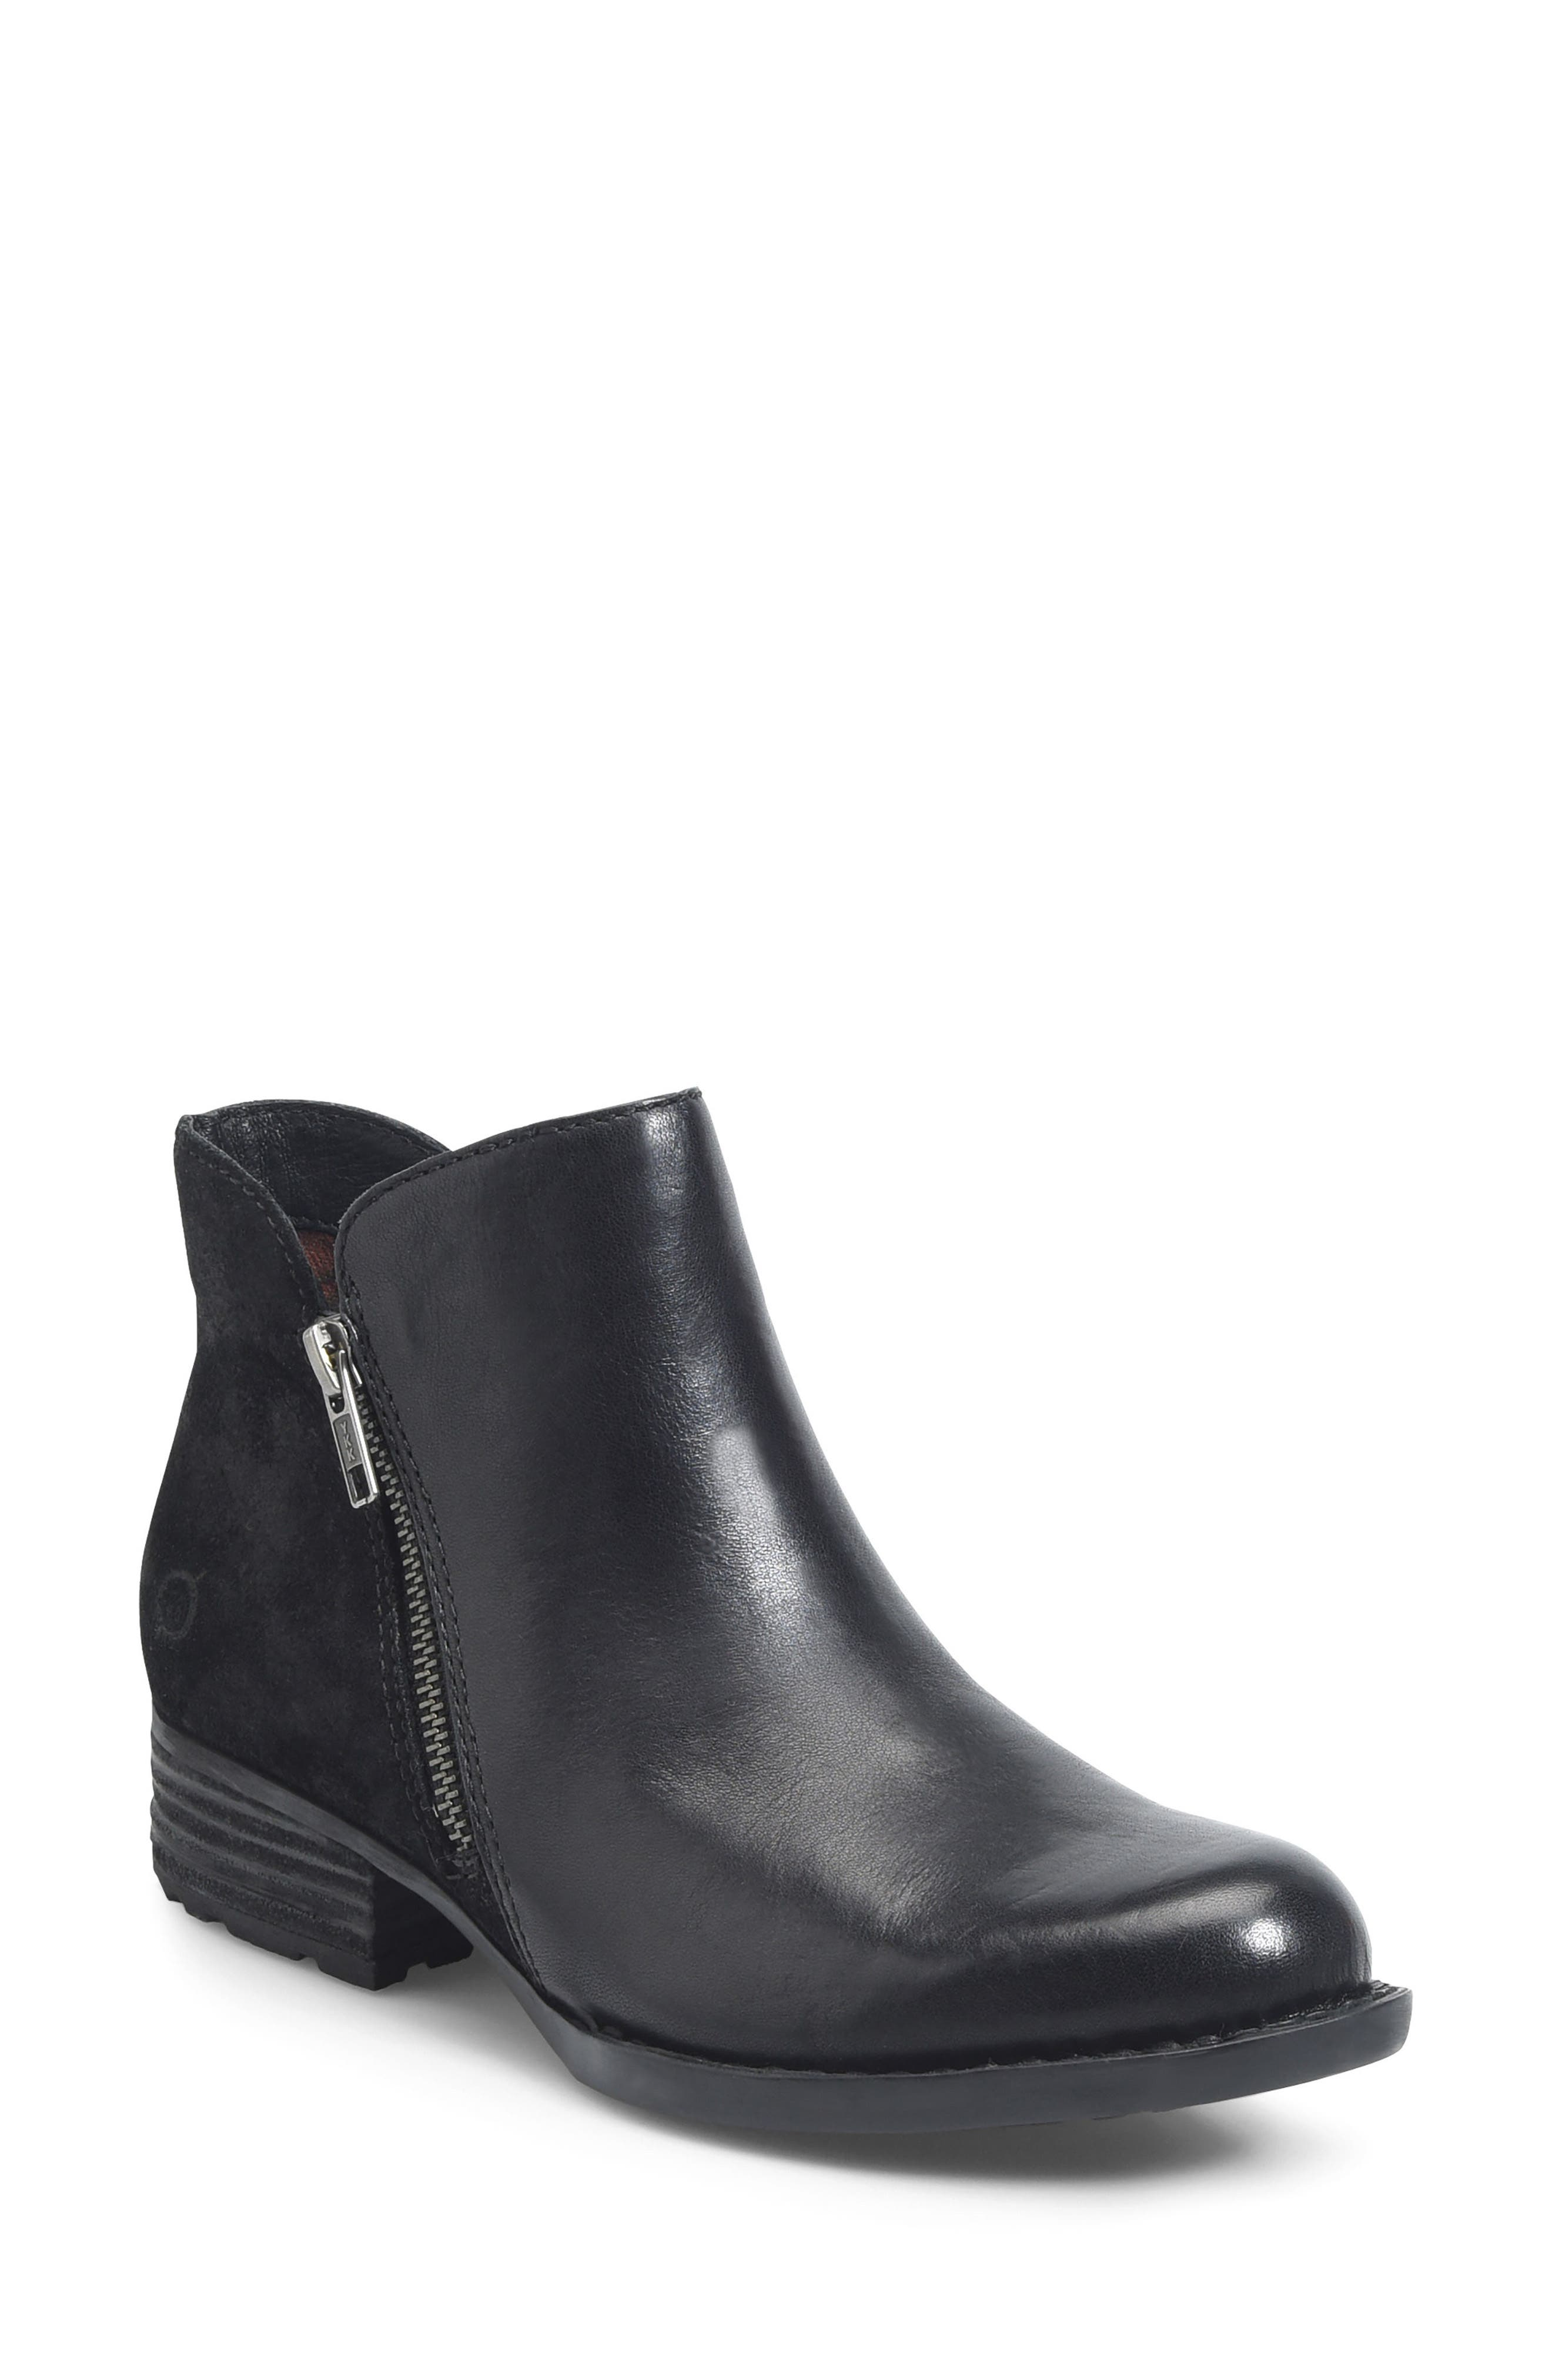 Keefe Bootie,                             Main thumbnail 1, color,                             001